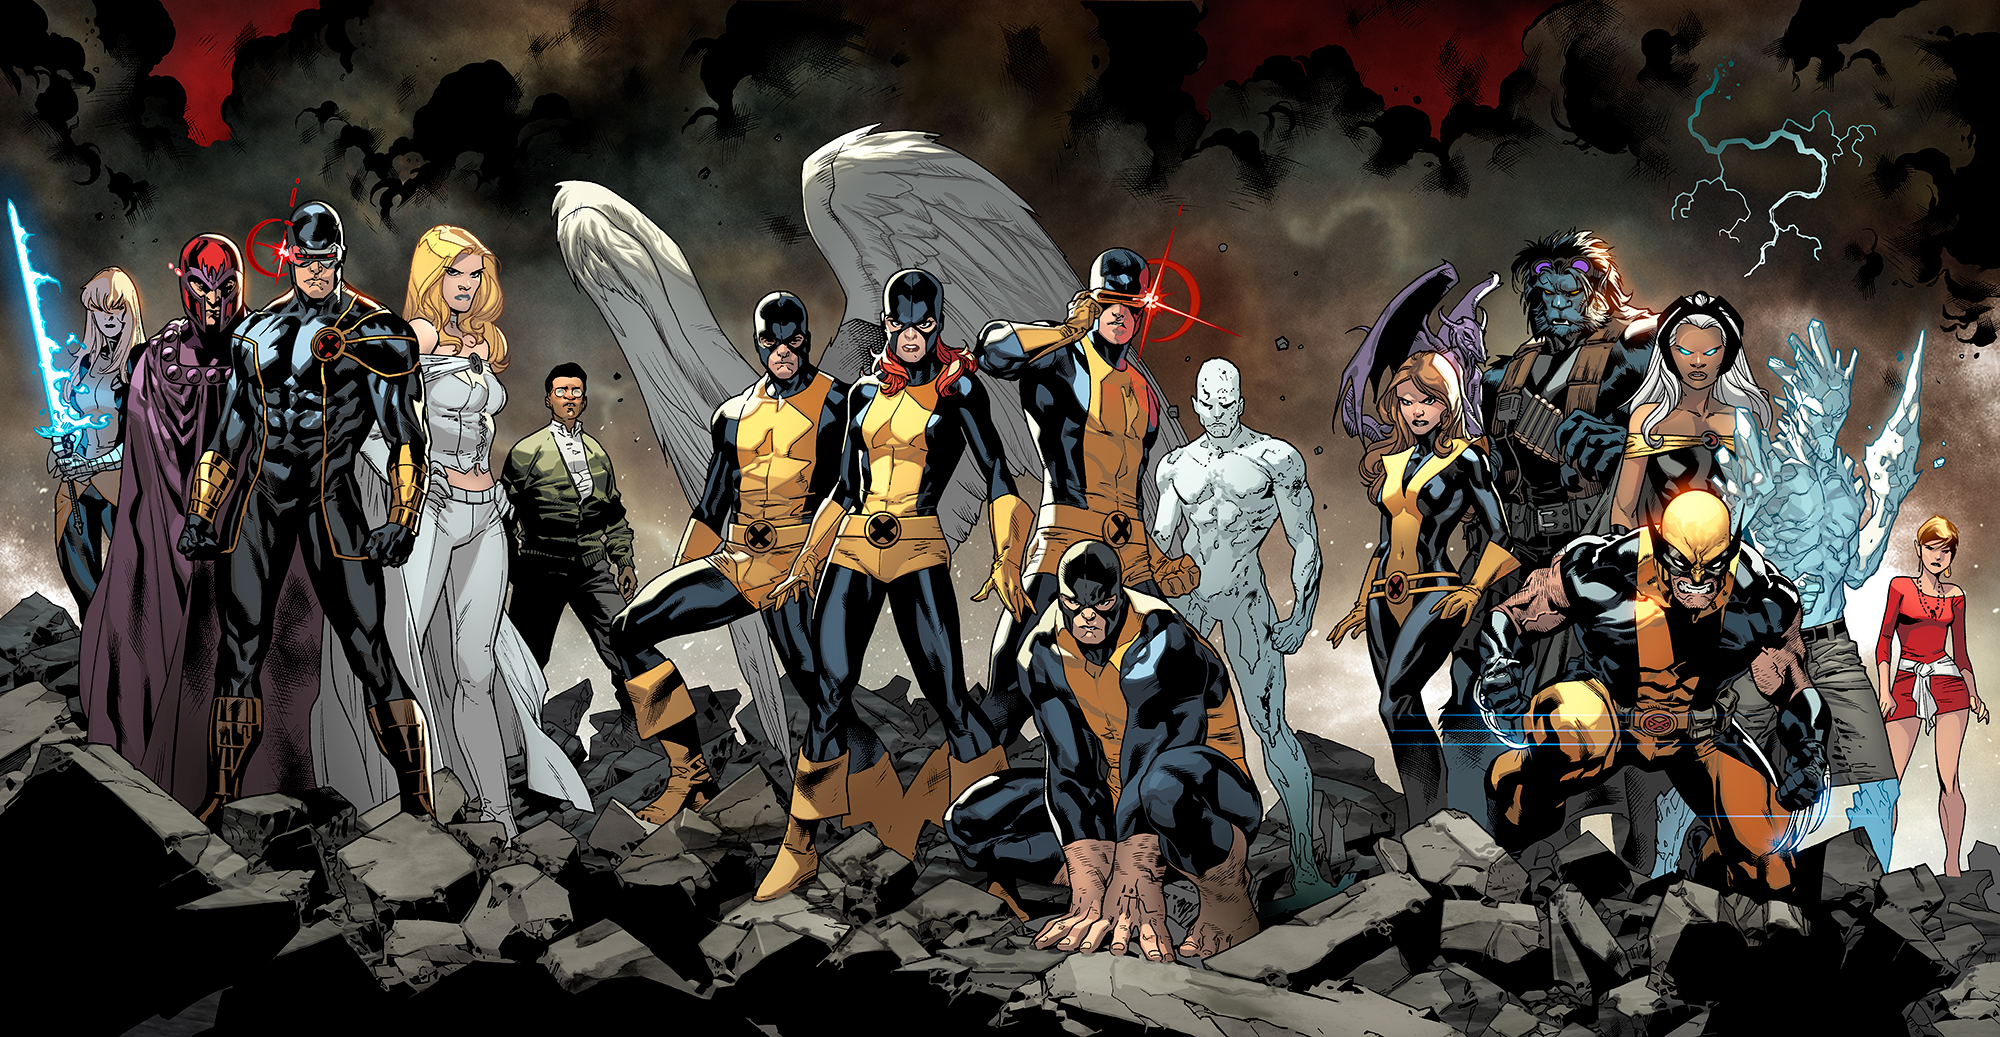 Free Download Hd X Men Backgrounds 2000x1037 For Your